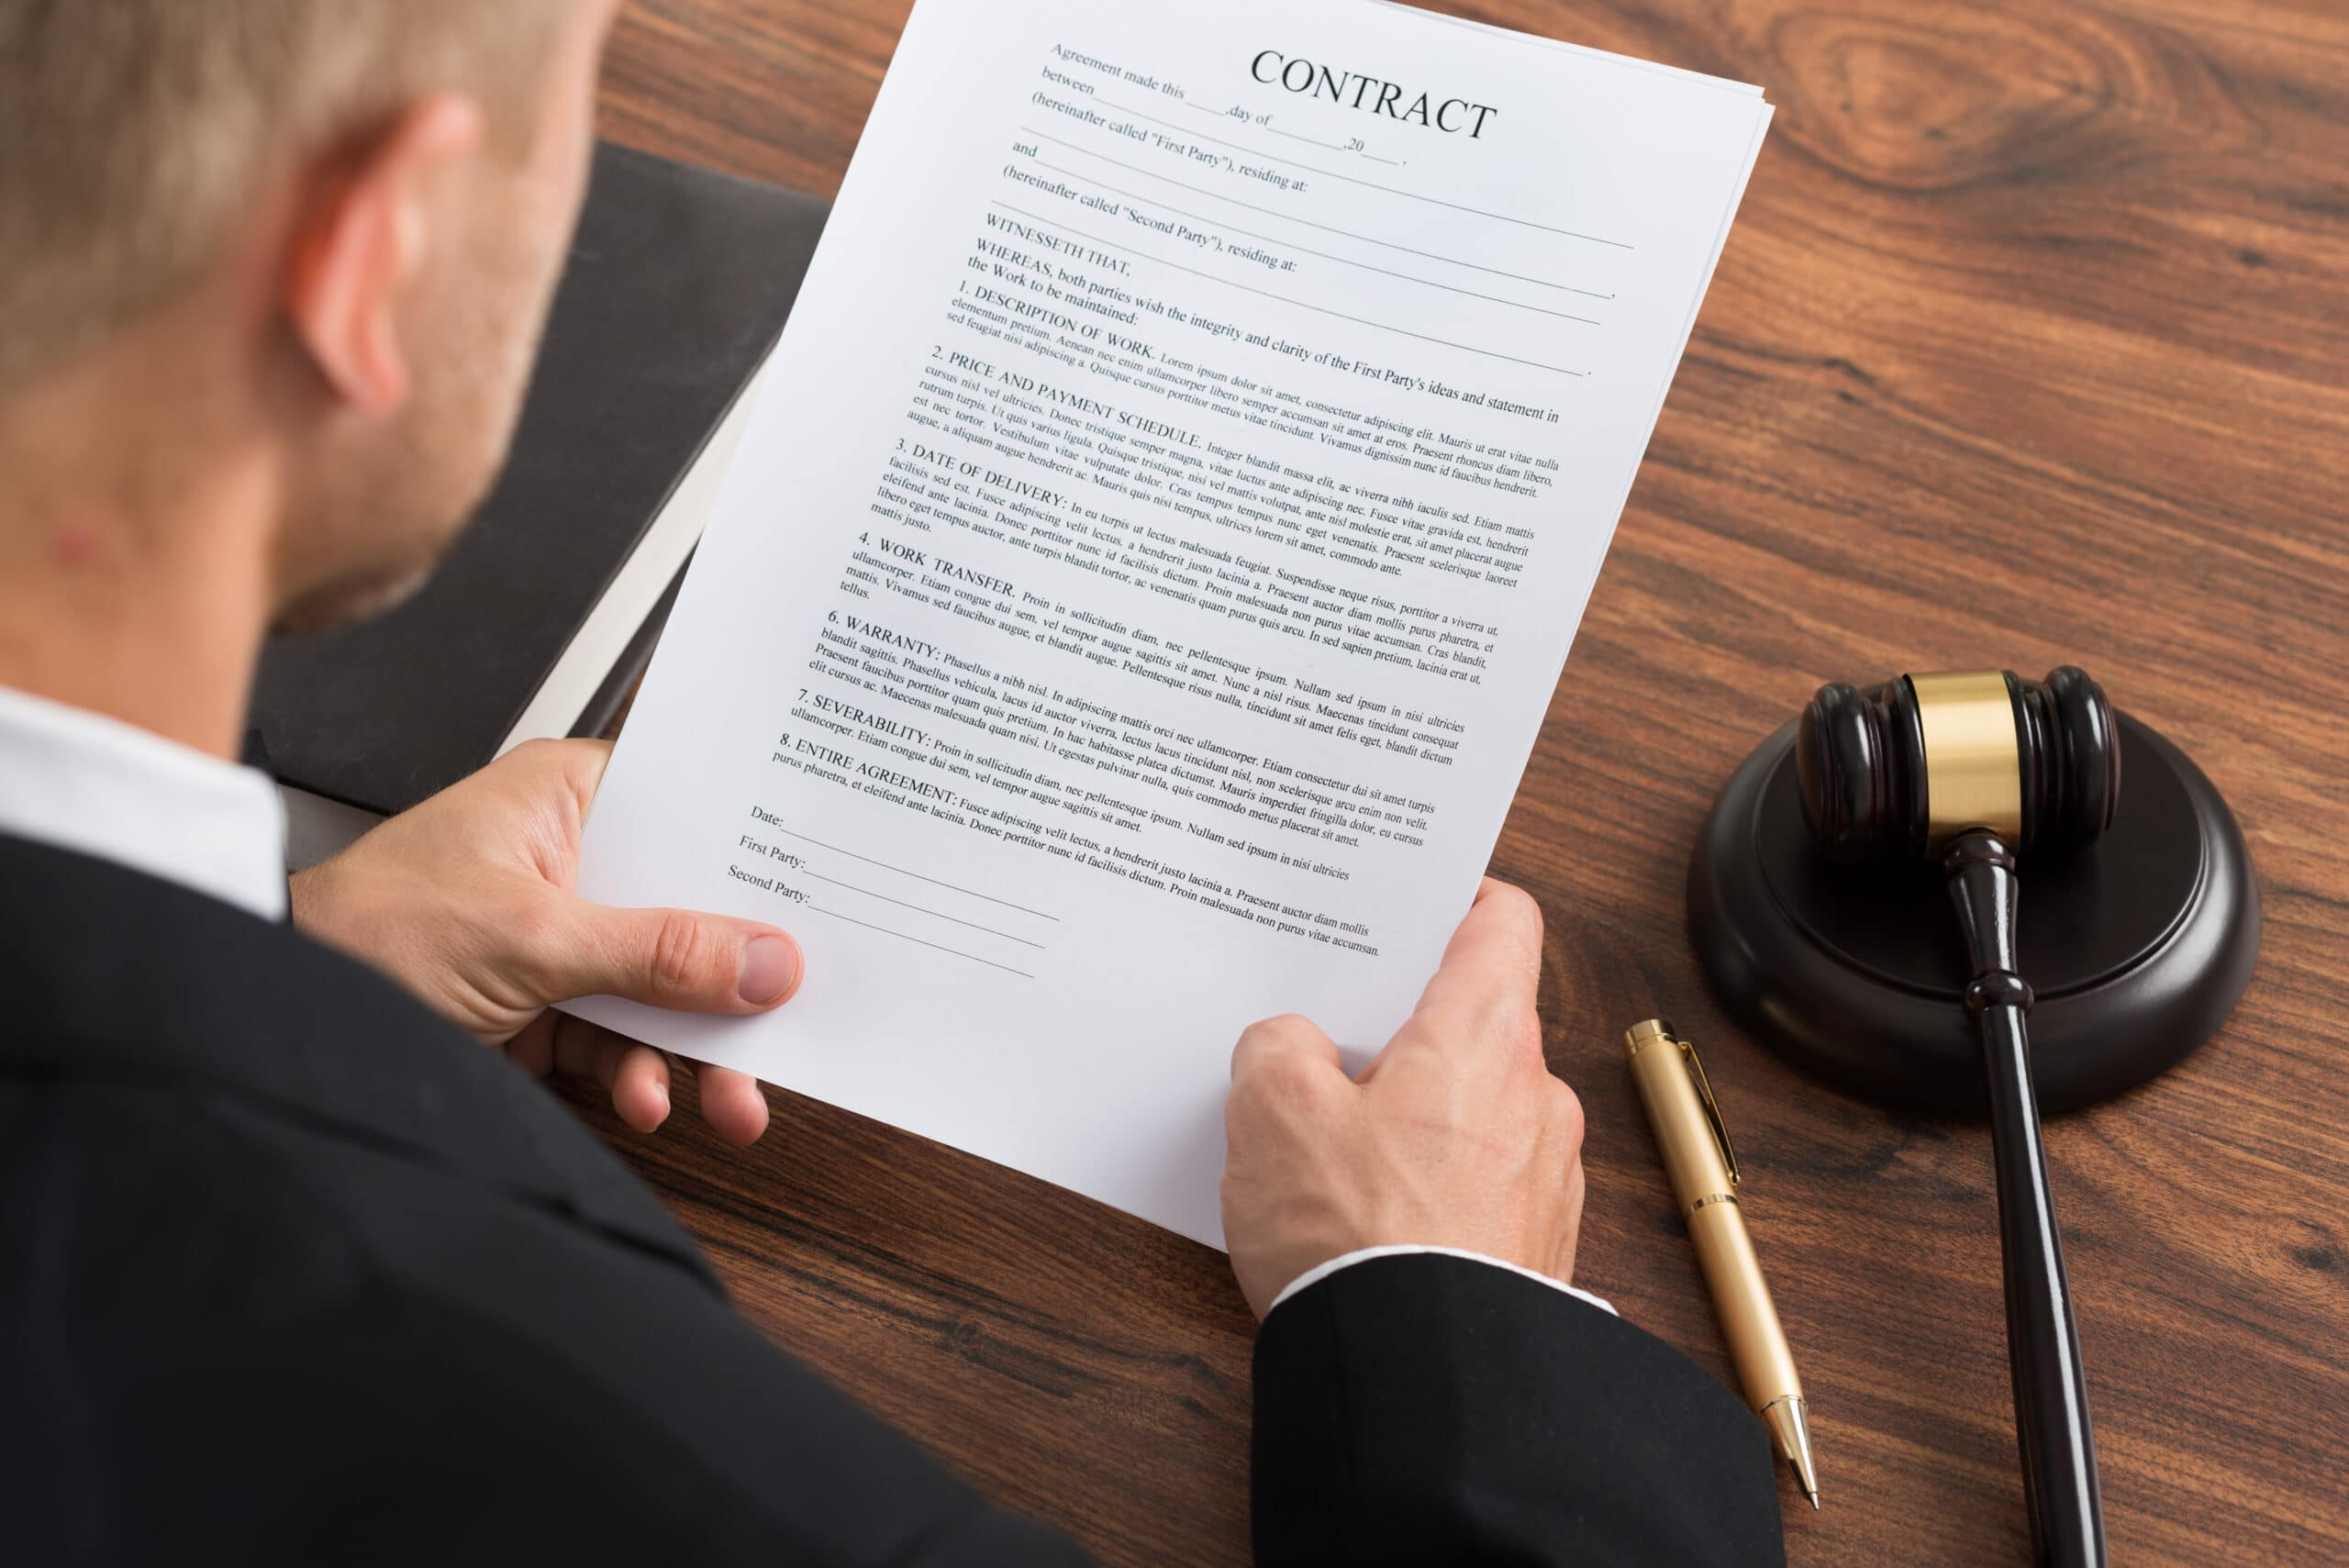 Judge Reading Contract